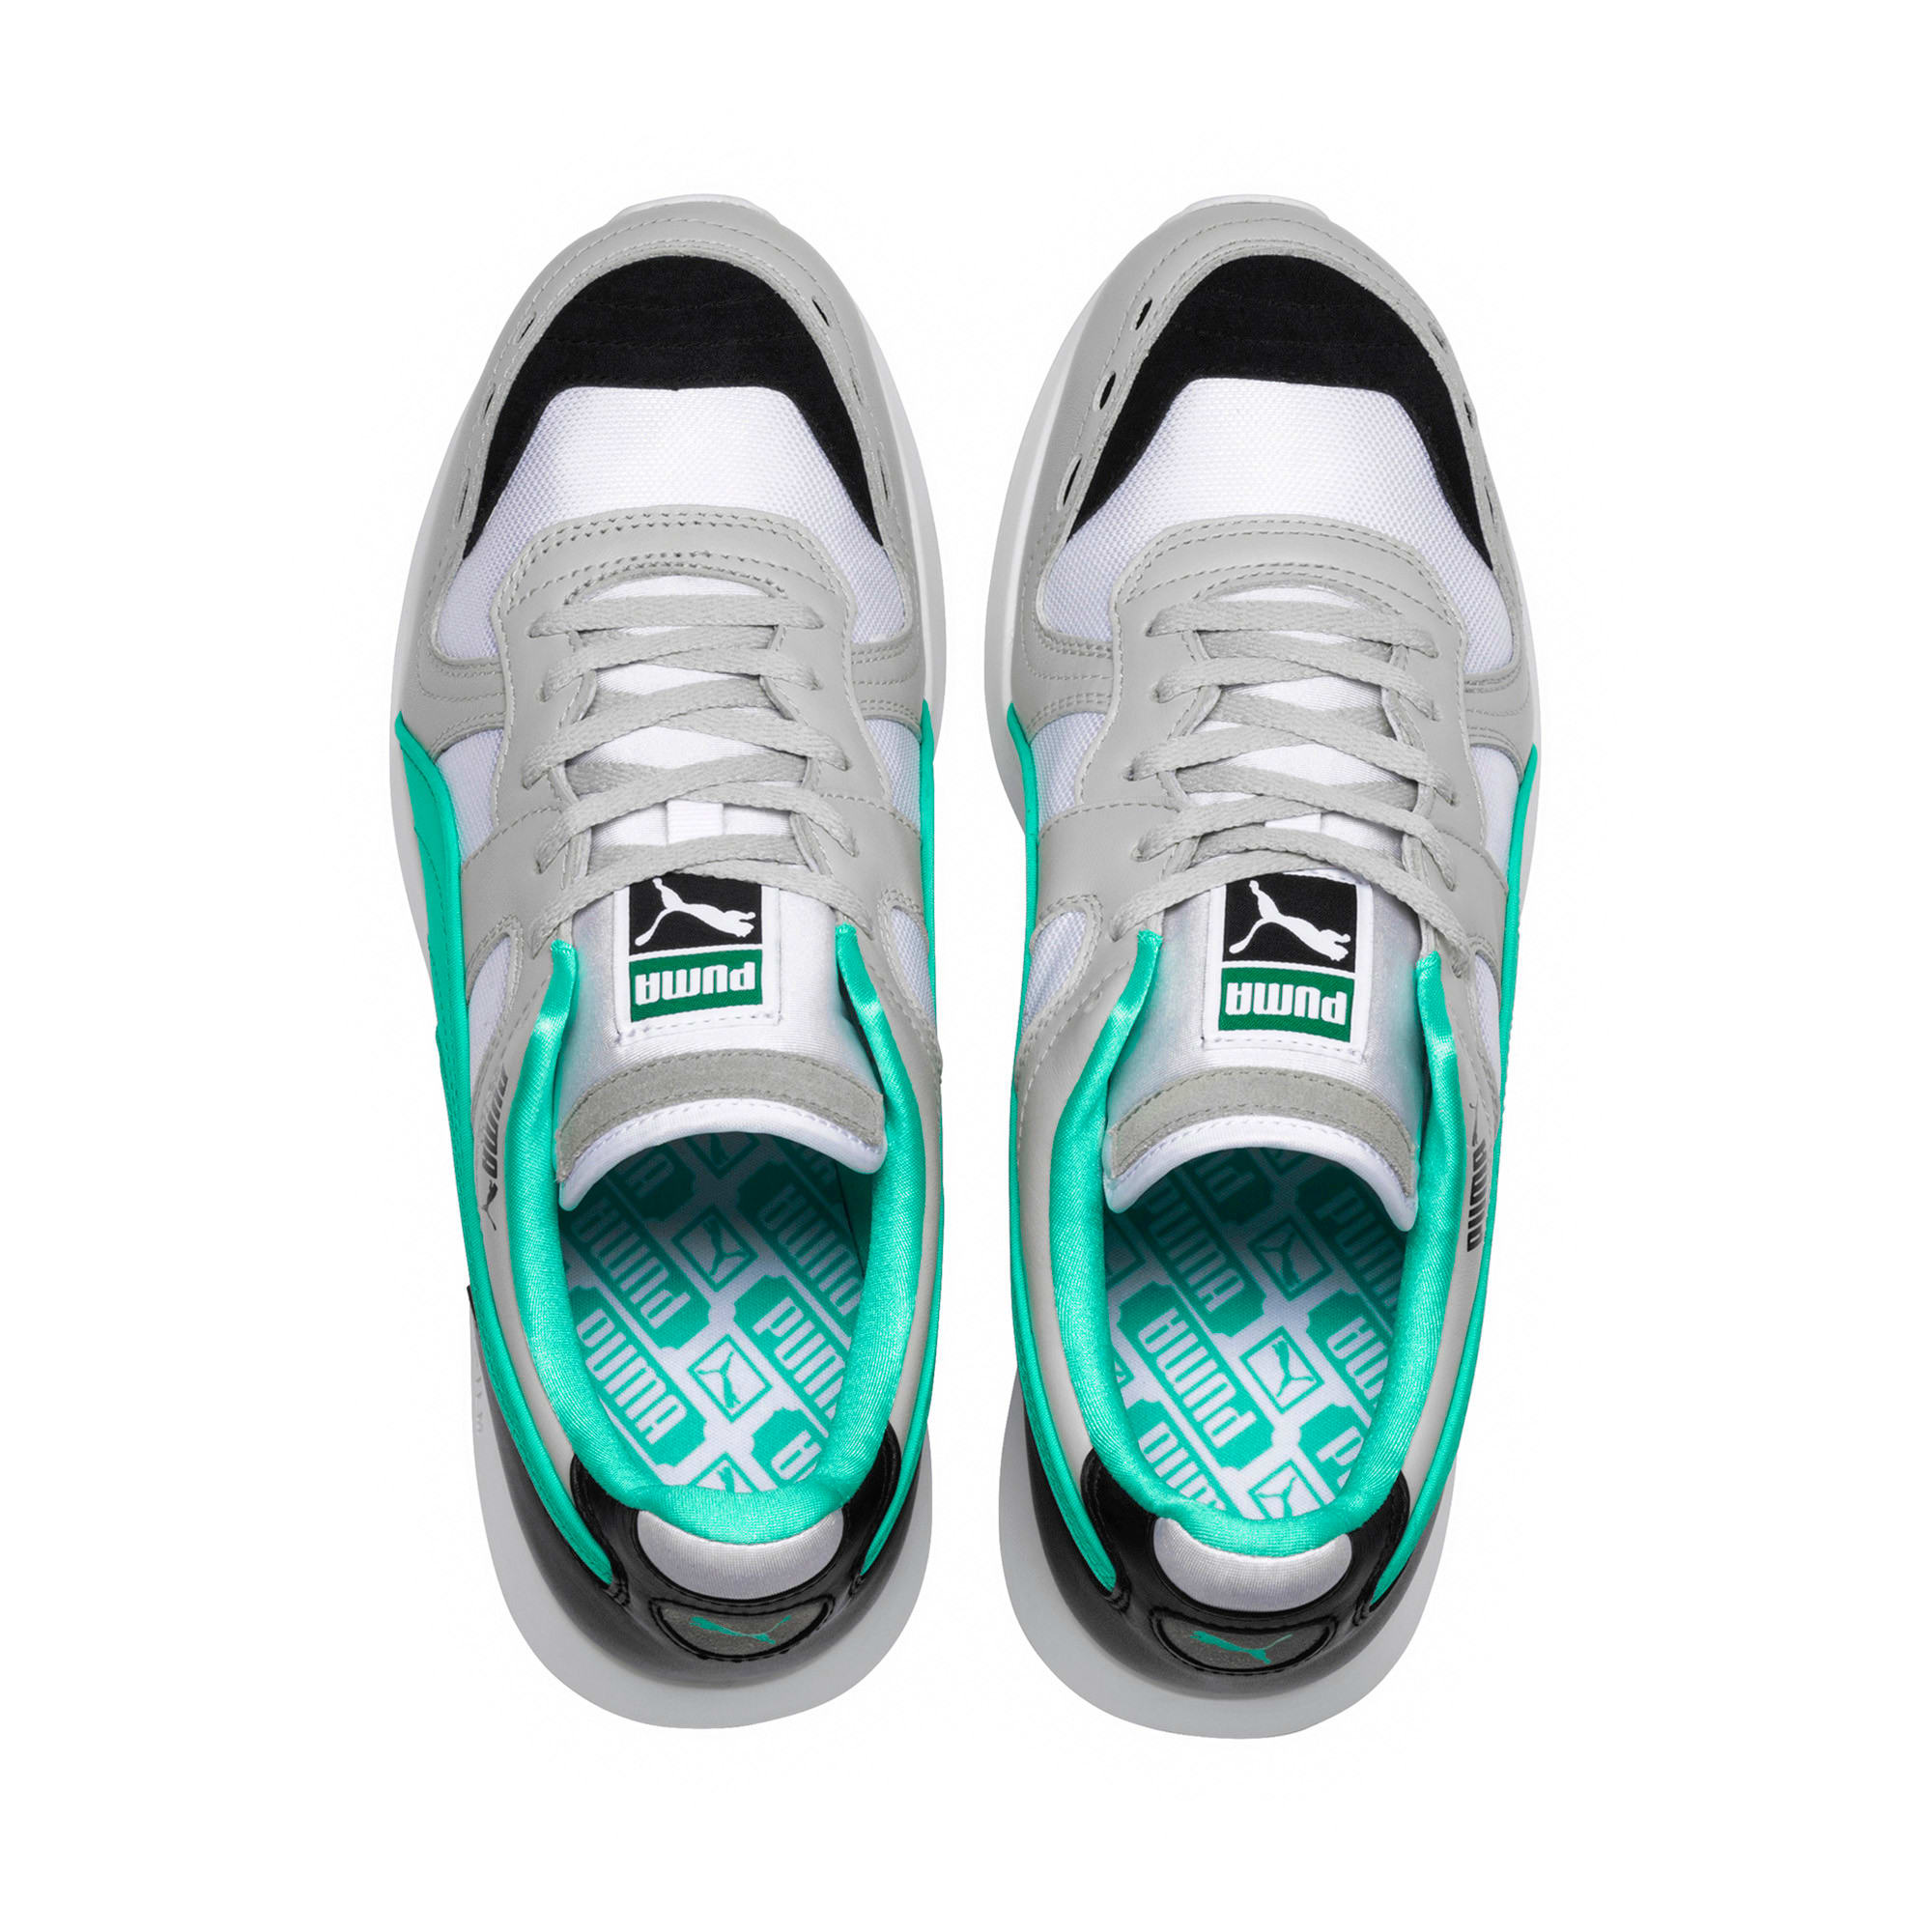 Thumbnail 6 of RS-100 Re-Invention Sneakers, GrayViolet-BiscayGreen-White, medium